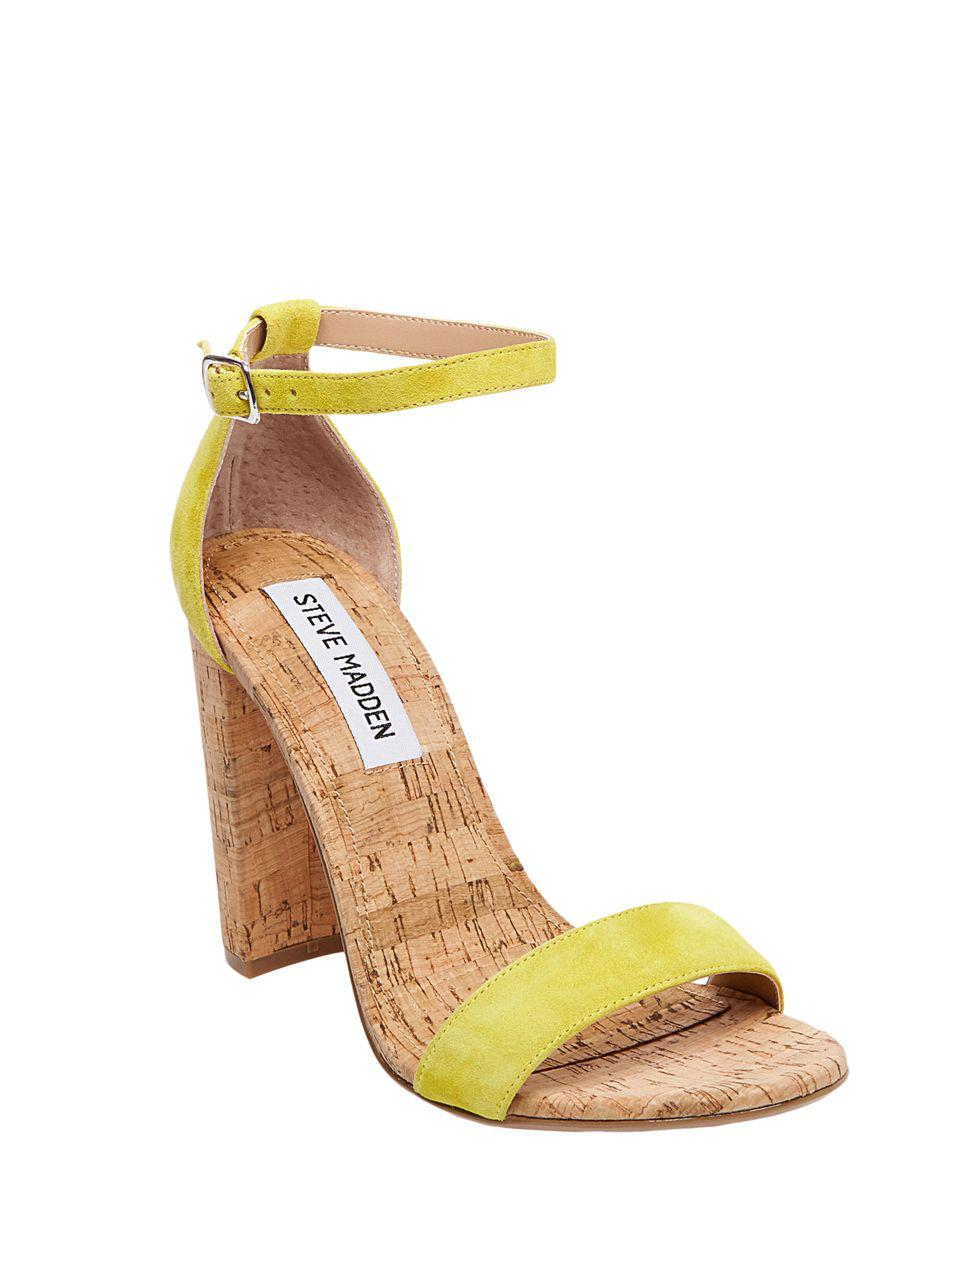 33232fda2f0 Gallery. Previously sold at  Lord   Taylor · Women s Yellow Heels